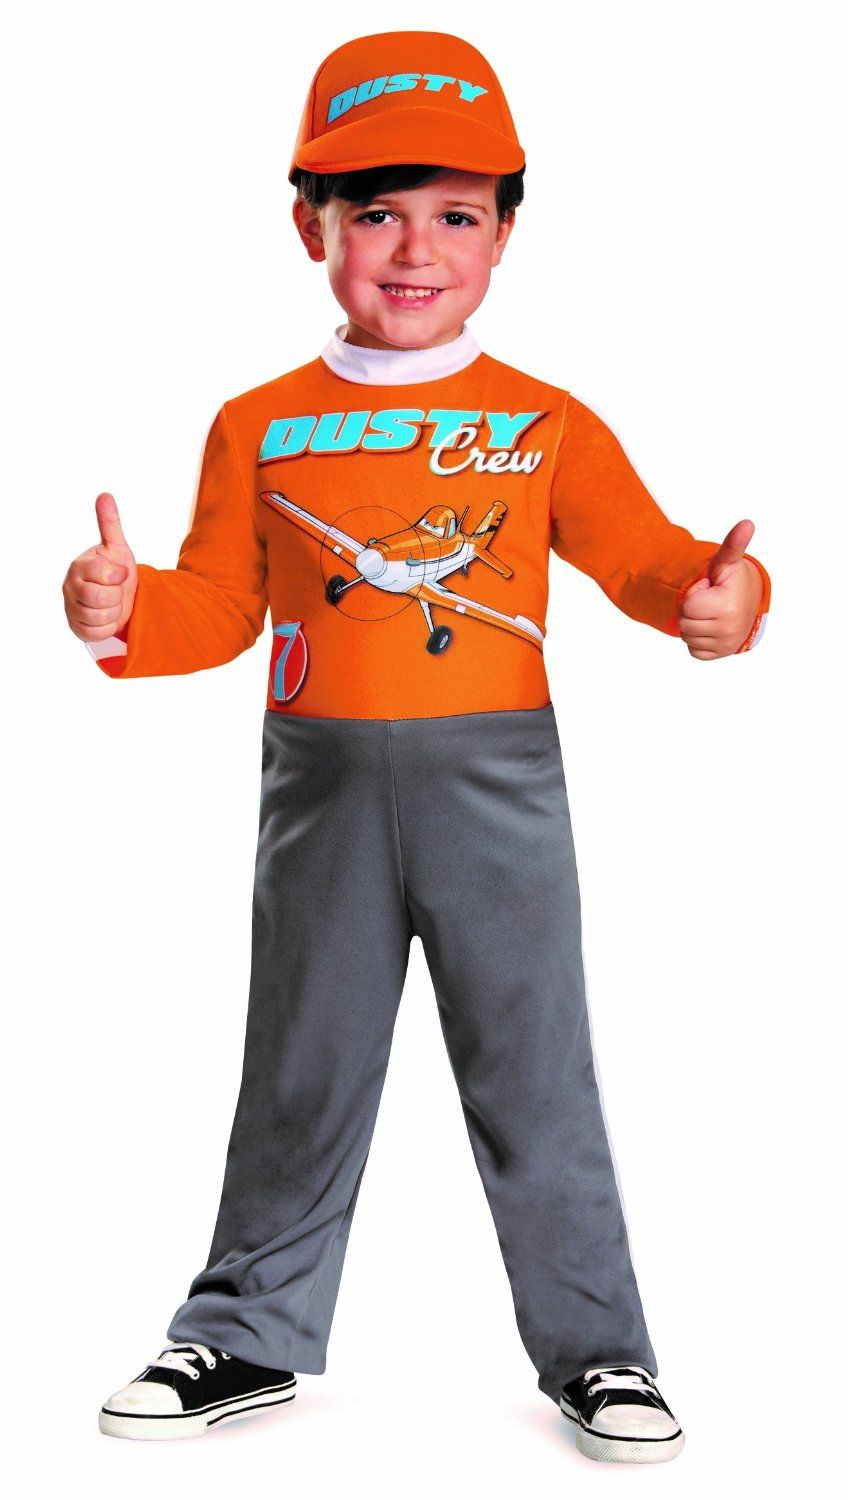 Disney Planes Rusty Crew Costume for Kids children  sc 1 st  Pinterest & Disney Planes Rusty Crew Costume for Kids children | Costumes ...